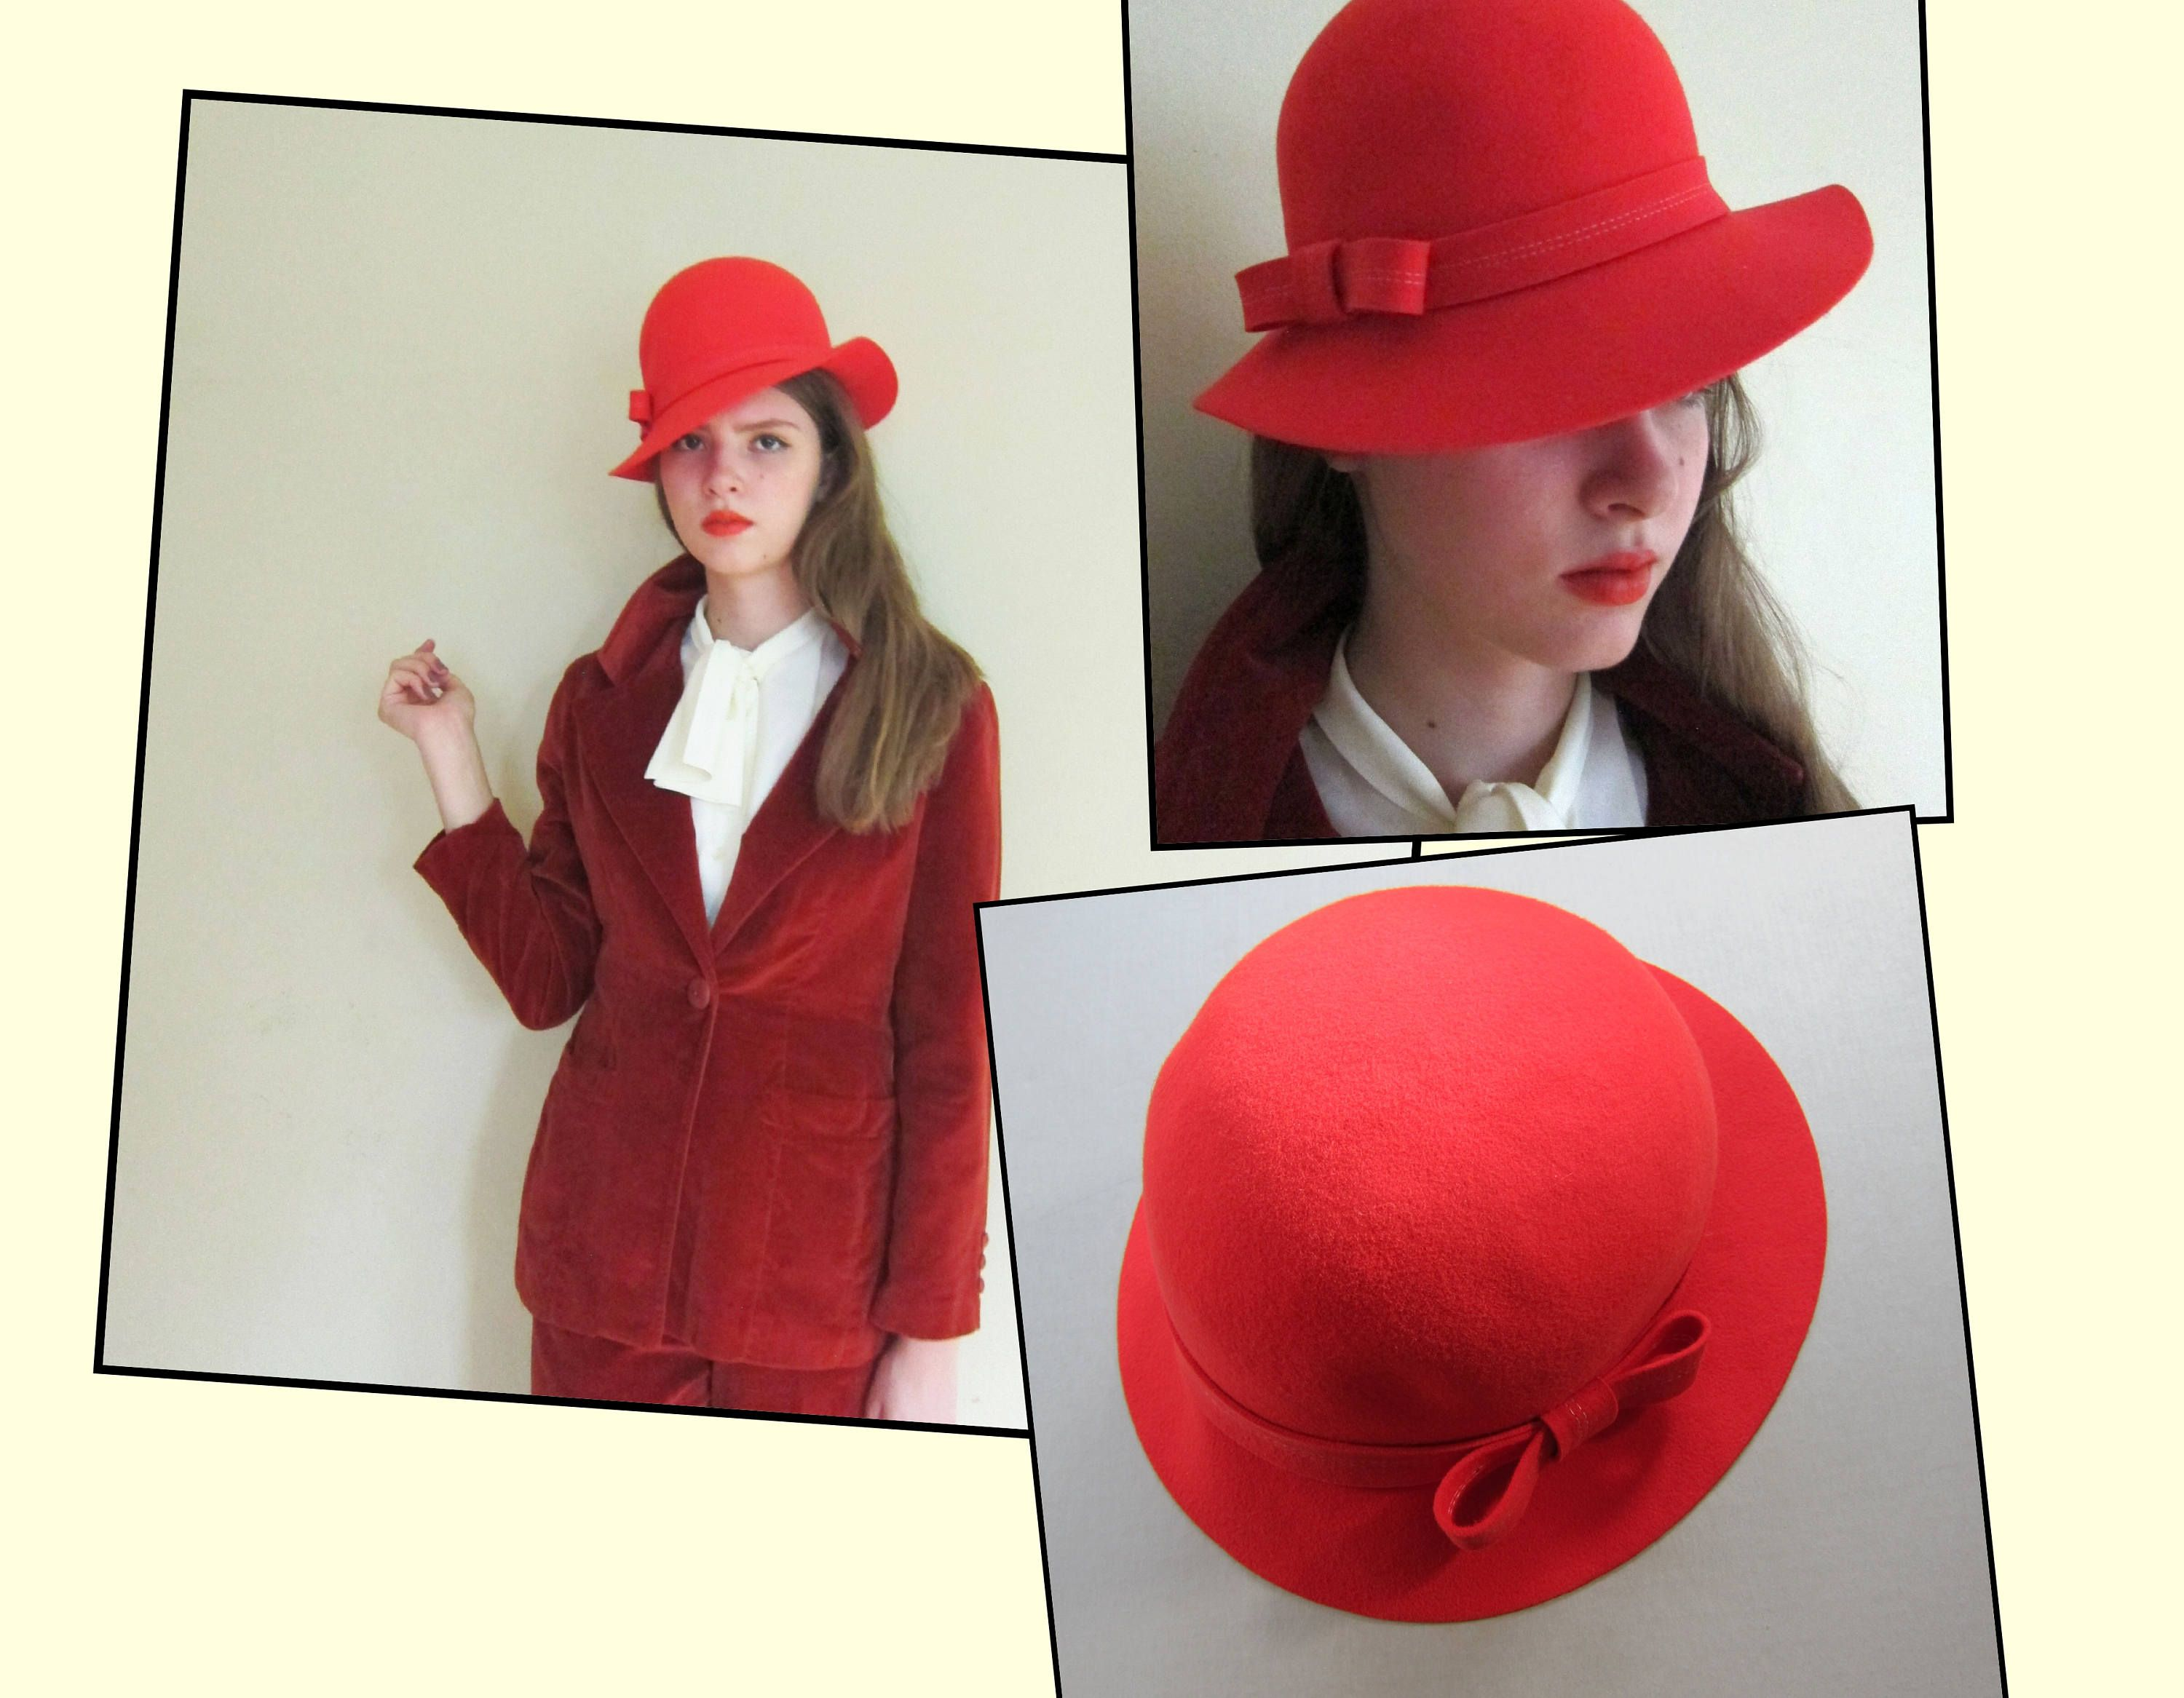 a844fe7ab5d Vintage 1970s Bright Orange Wool Hat   70s Tall Brimmed Hat by Arete by  BasyaBerkman on Etsy